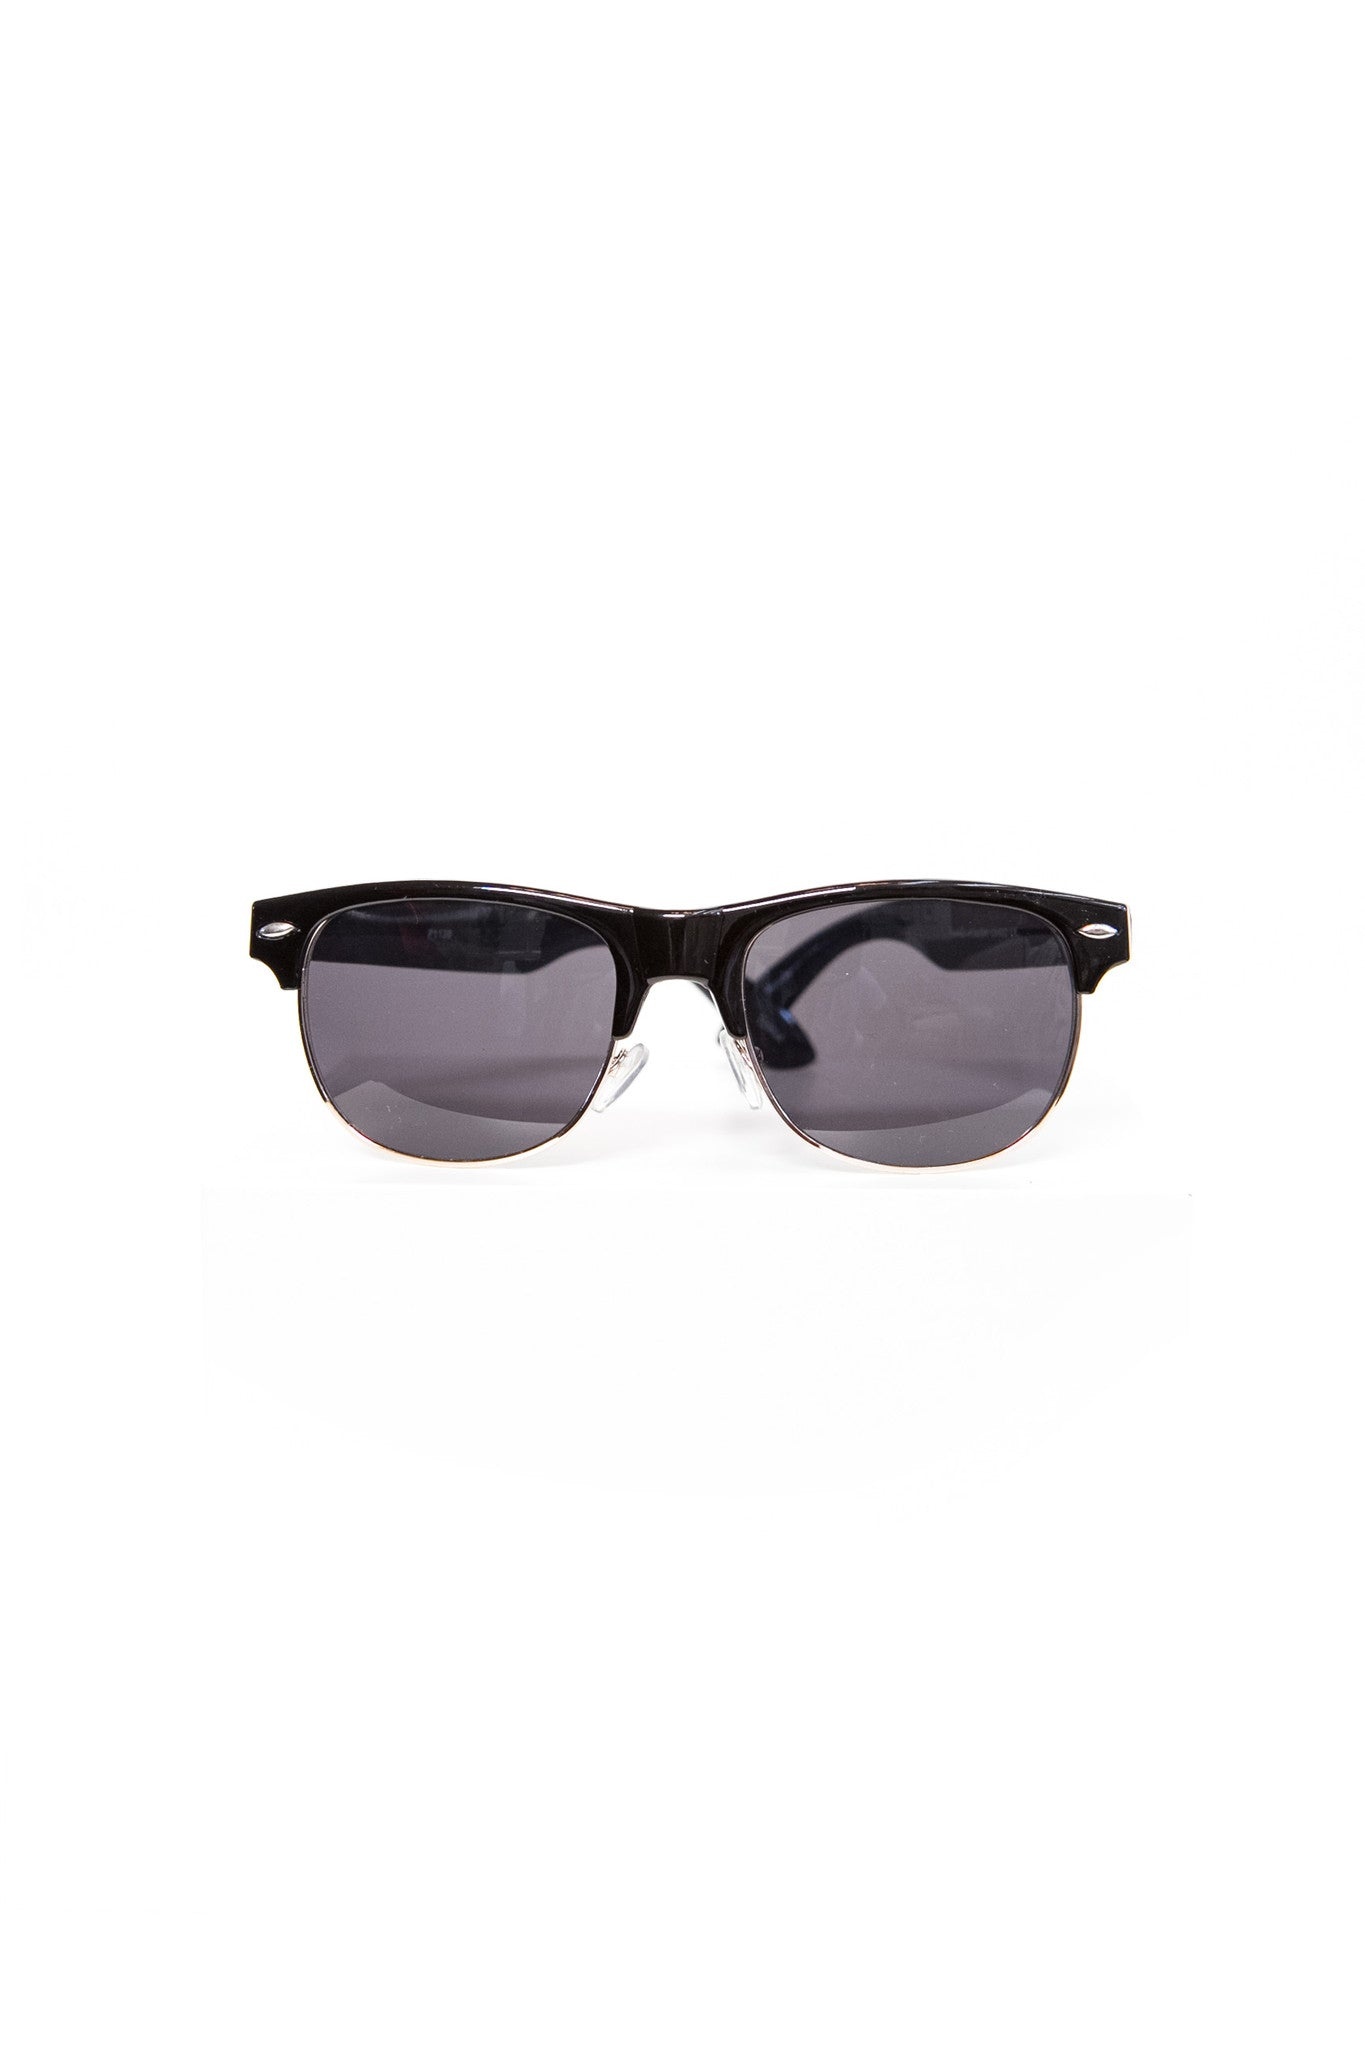 Kanta Sunglasses